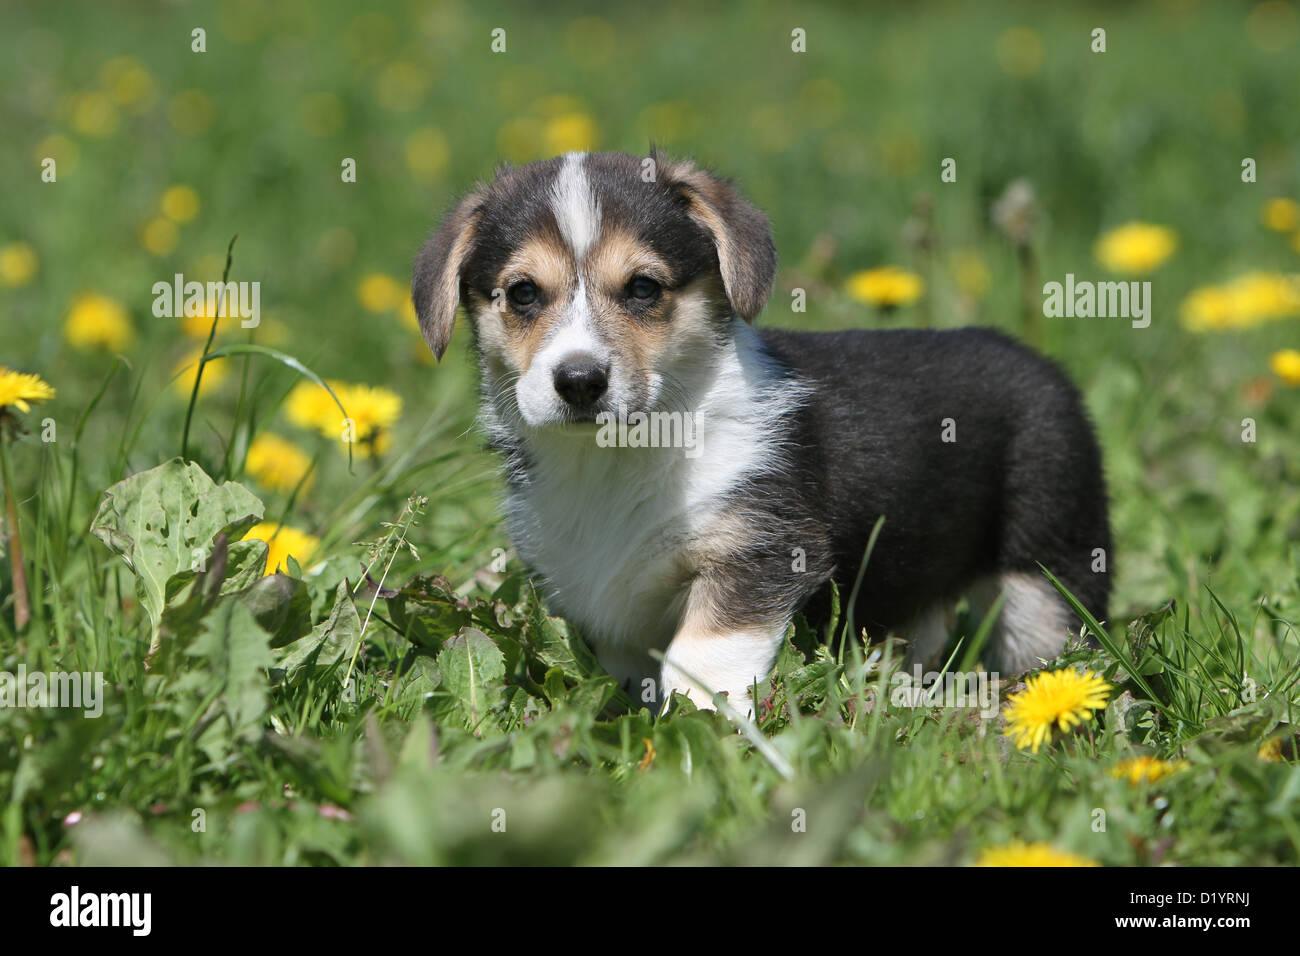 Black And White Corgi Pup Stock Photos & Black And White Corgi Pup